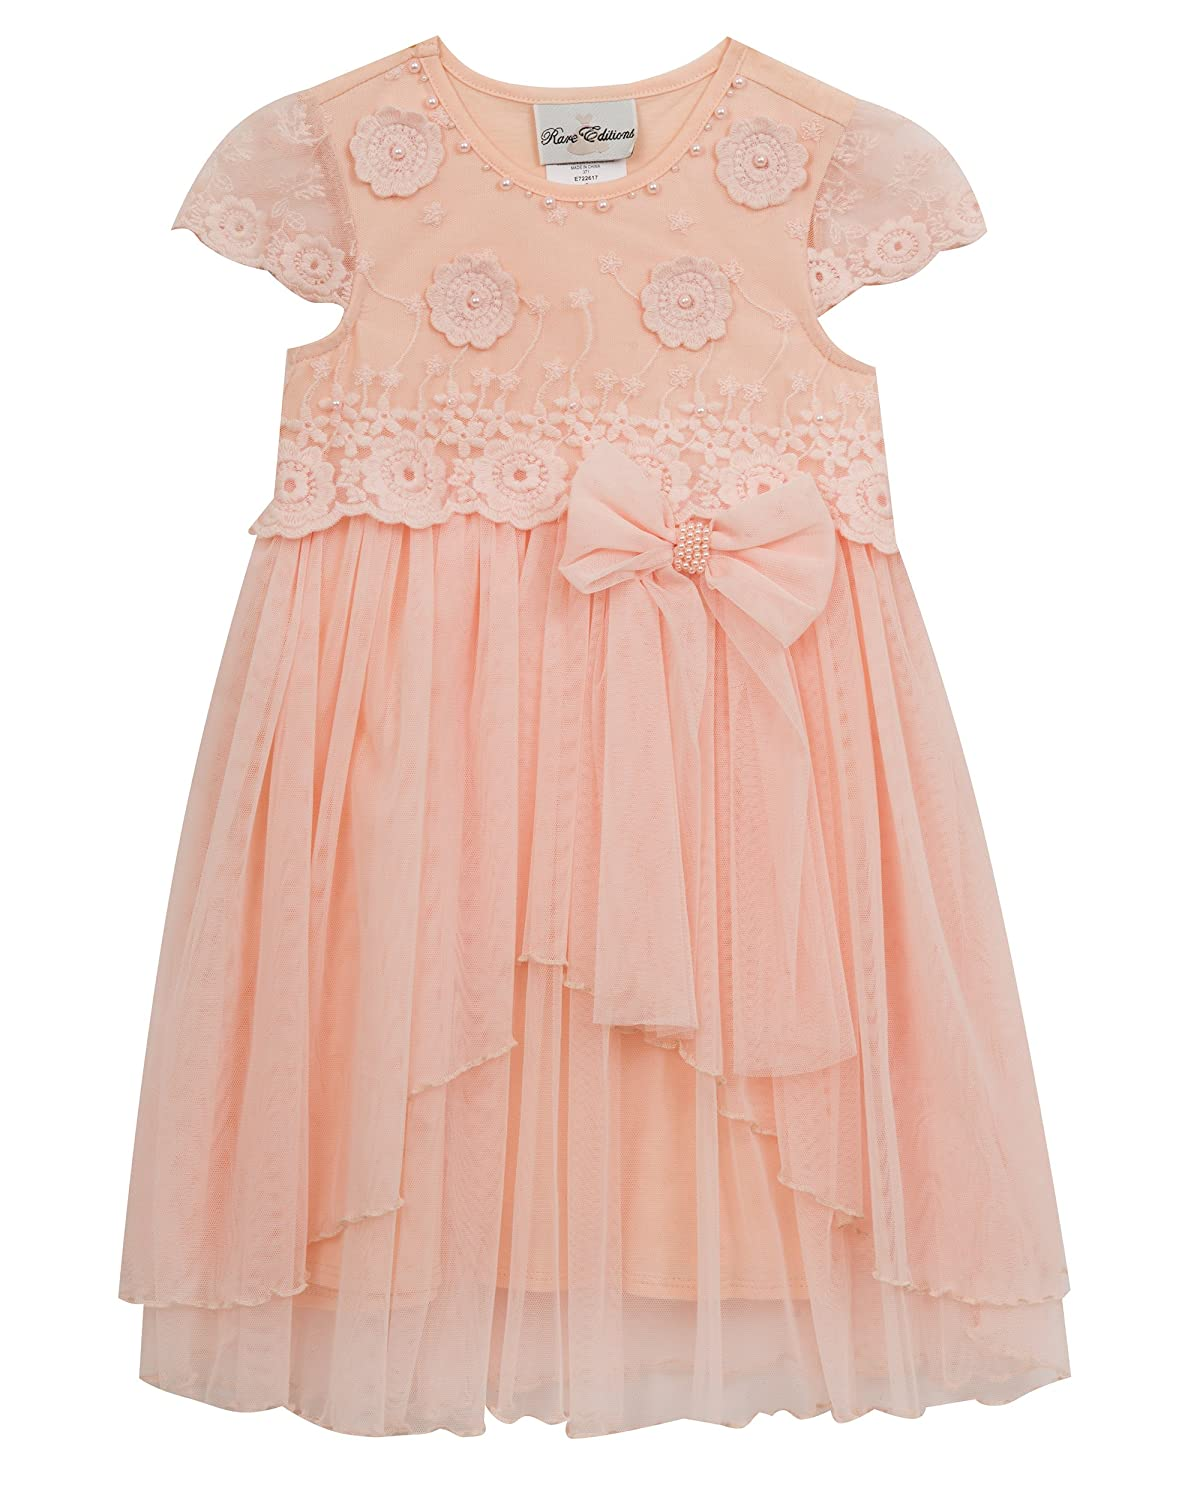 2134fb02fbac2 Amazon.com: Rare Editions Little Girls' Embroidered Party Dress, Blush, 6X:  Clothing